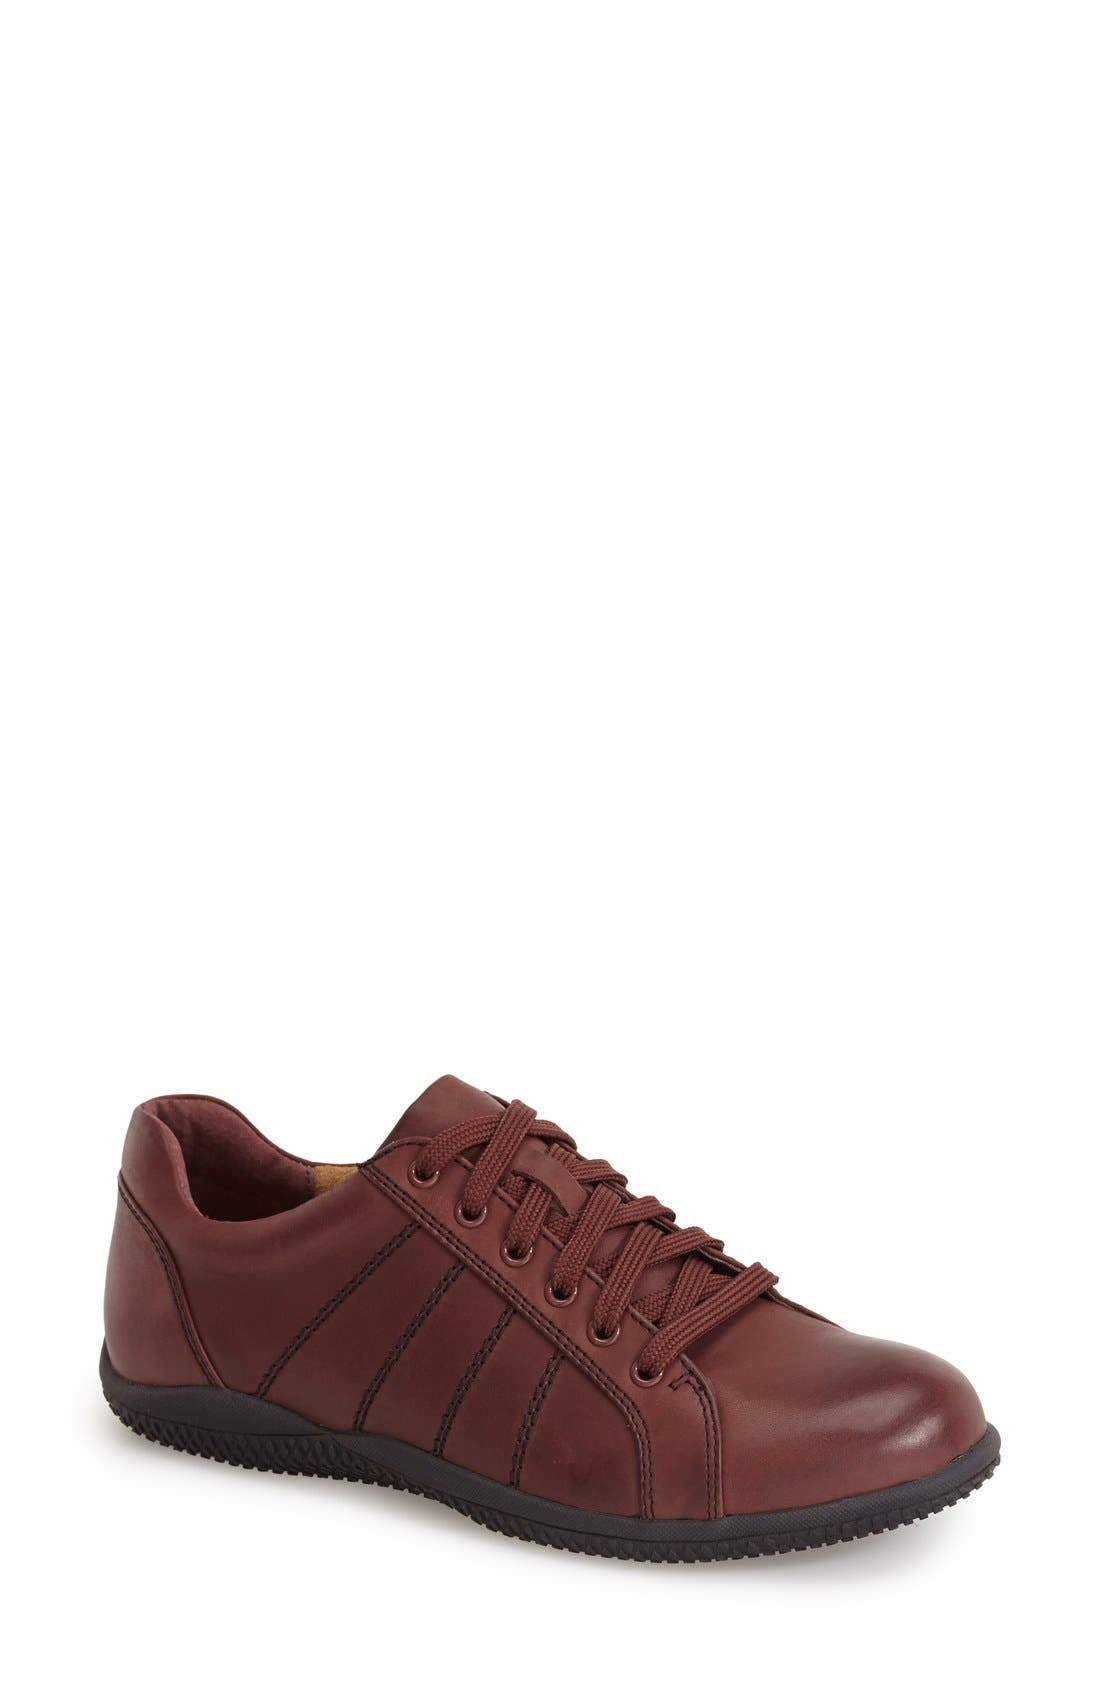 SOFTWALK® 'Hickory' Sneaker